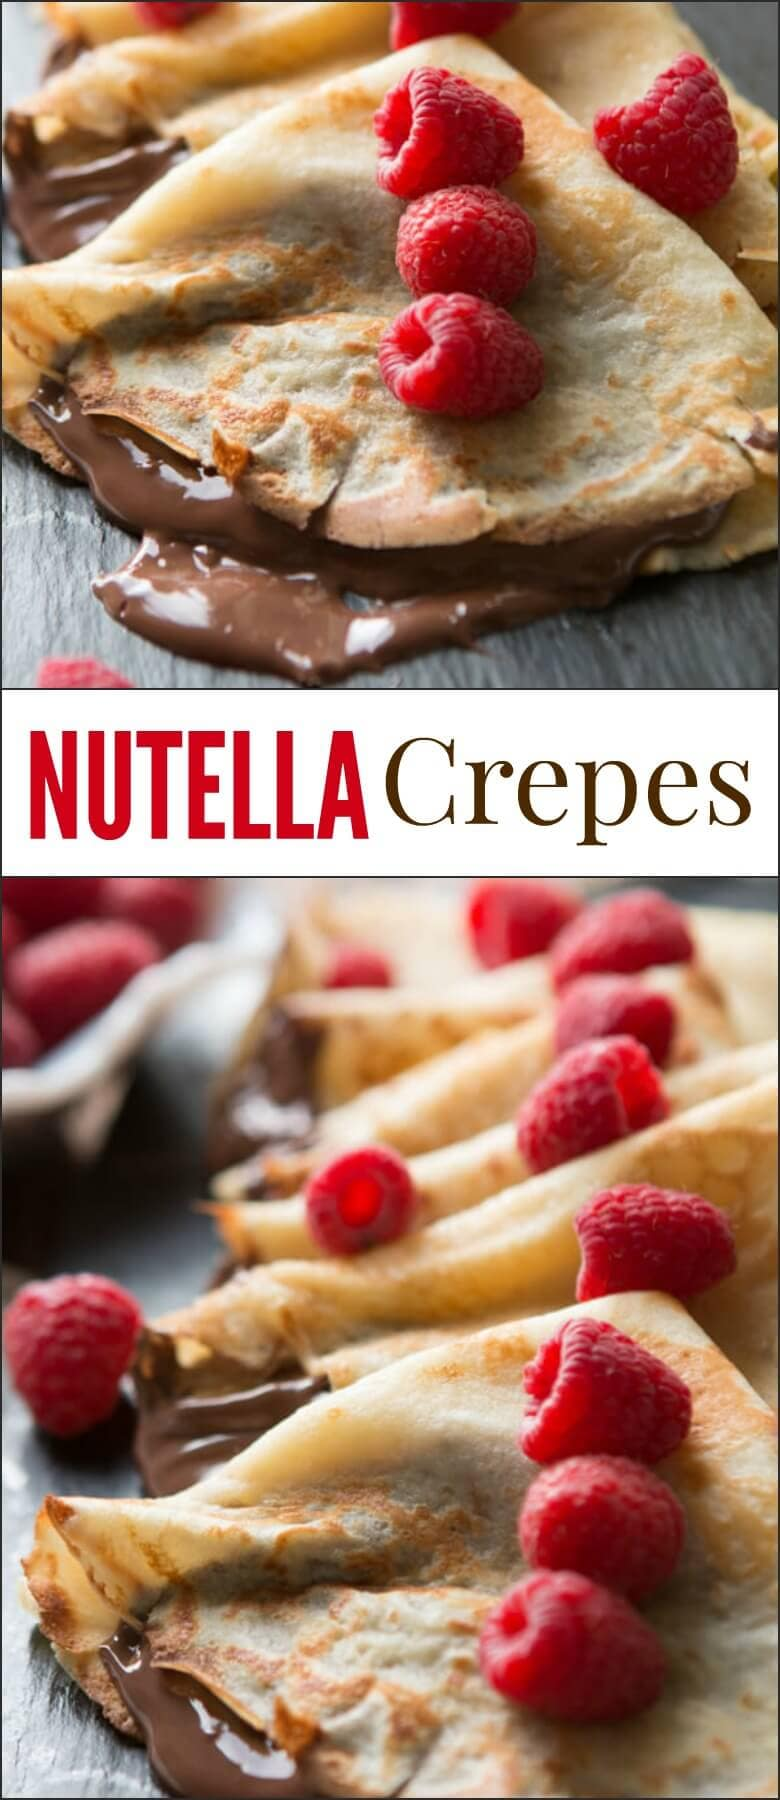 We love crepes at our house, especially Nutella Crepes. Or at least Cade and the girls do. I eat mine with just a little sprinkle of sugar. I don't know why but I love them that way. ohsweetbasil.com